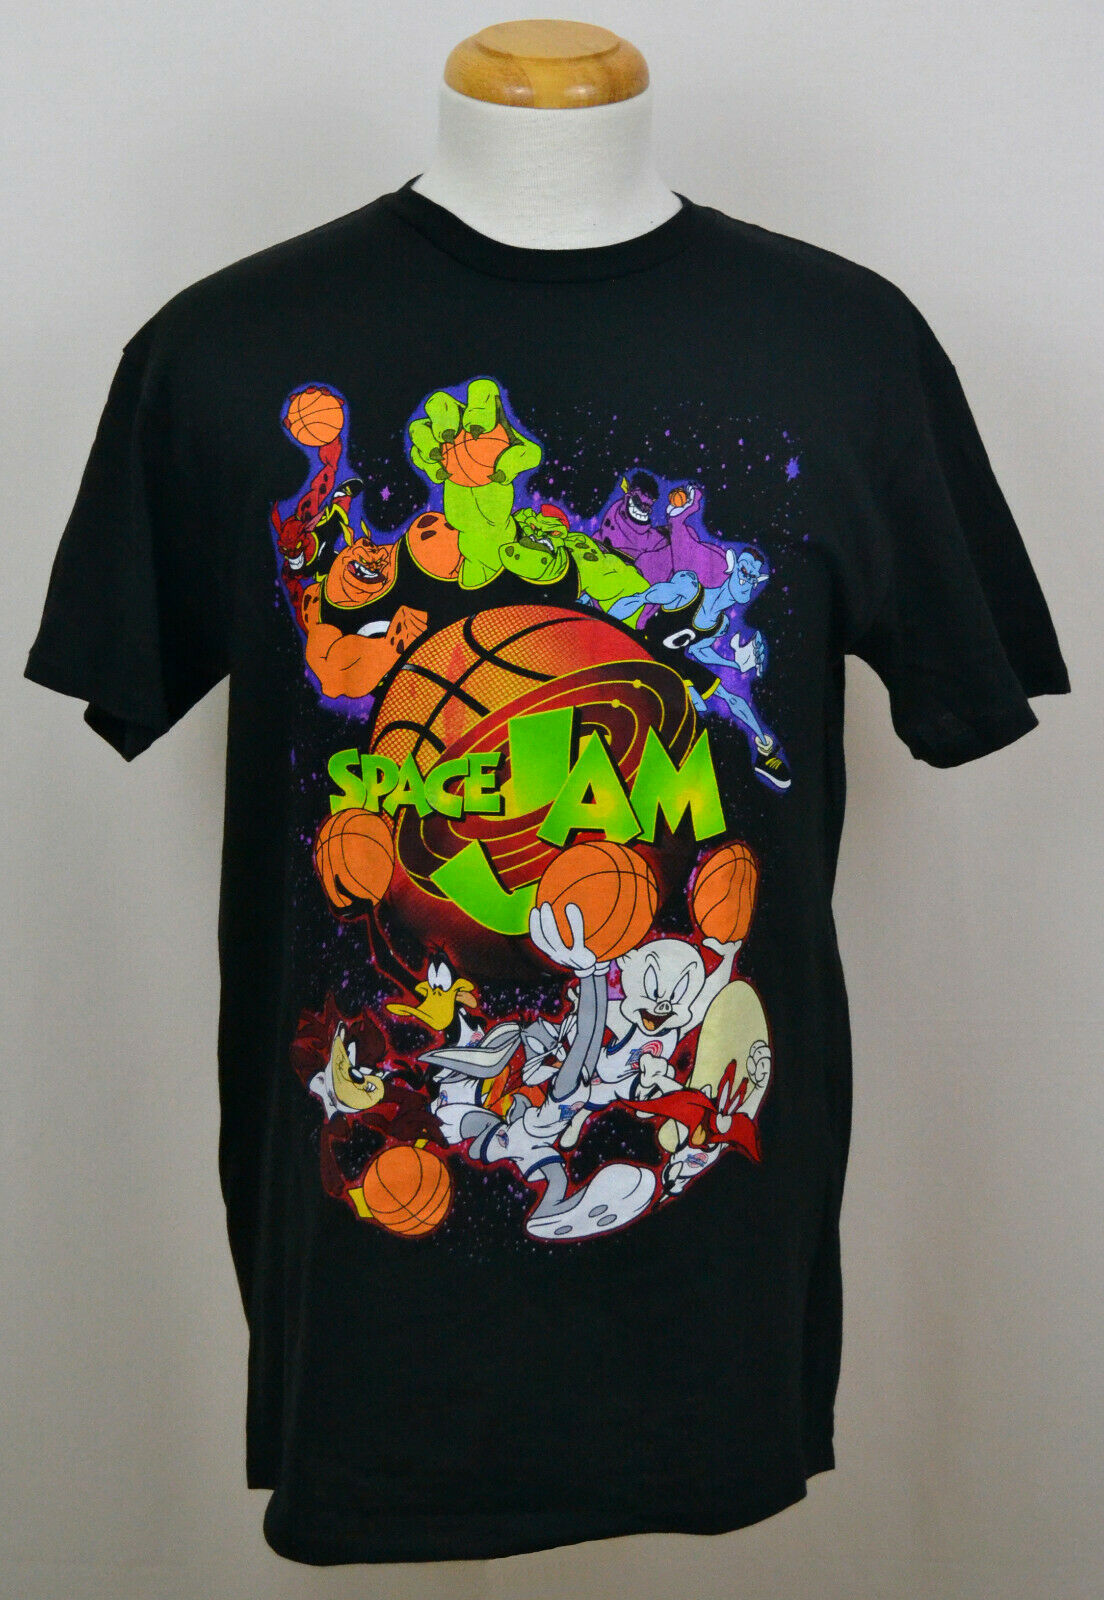 Looney Tunes Space Jam T-shirt Tunes Vs Monstars Graphic Tee Cotton Black NWT